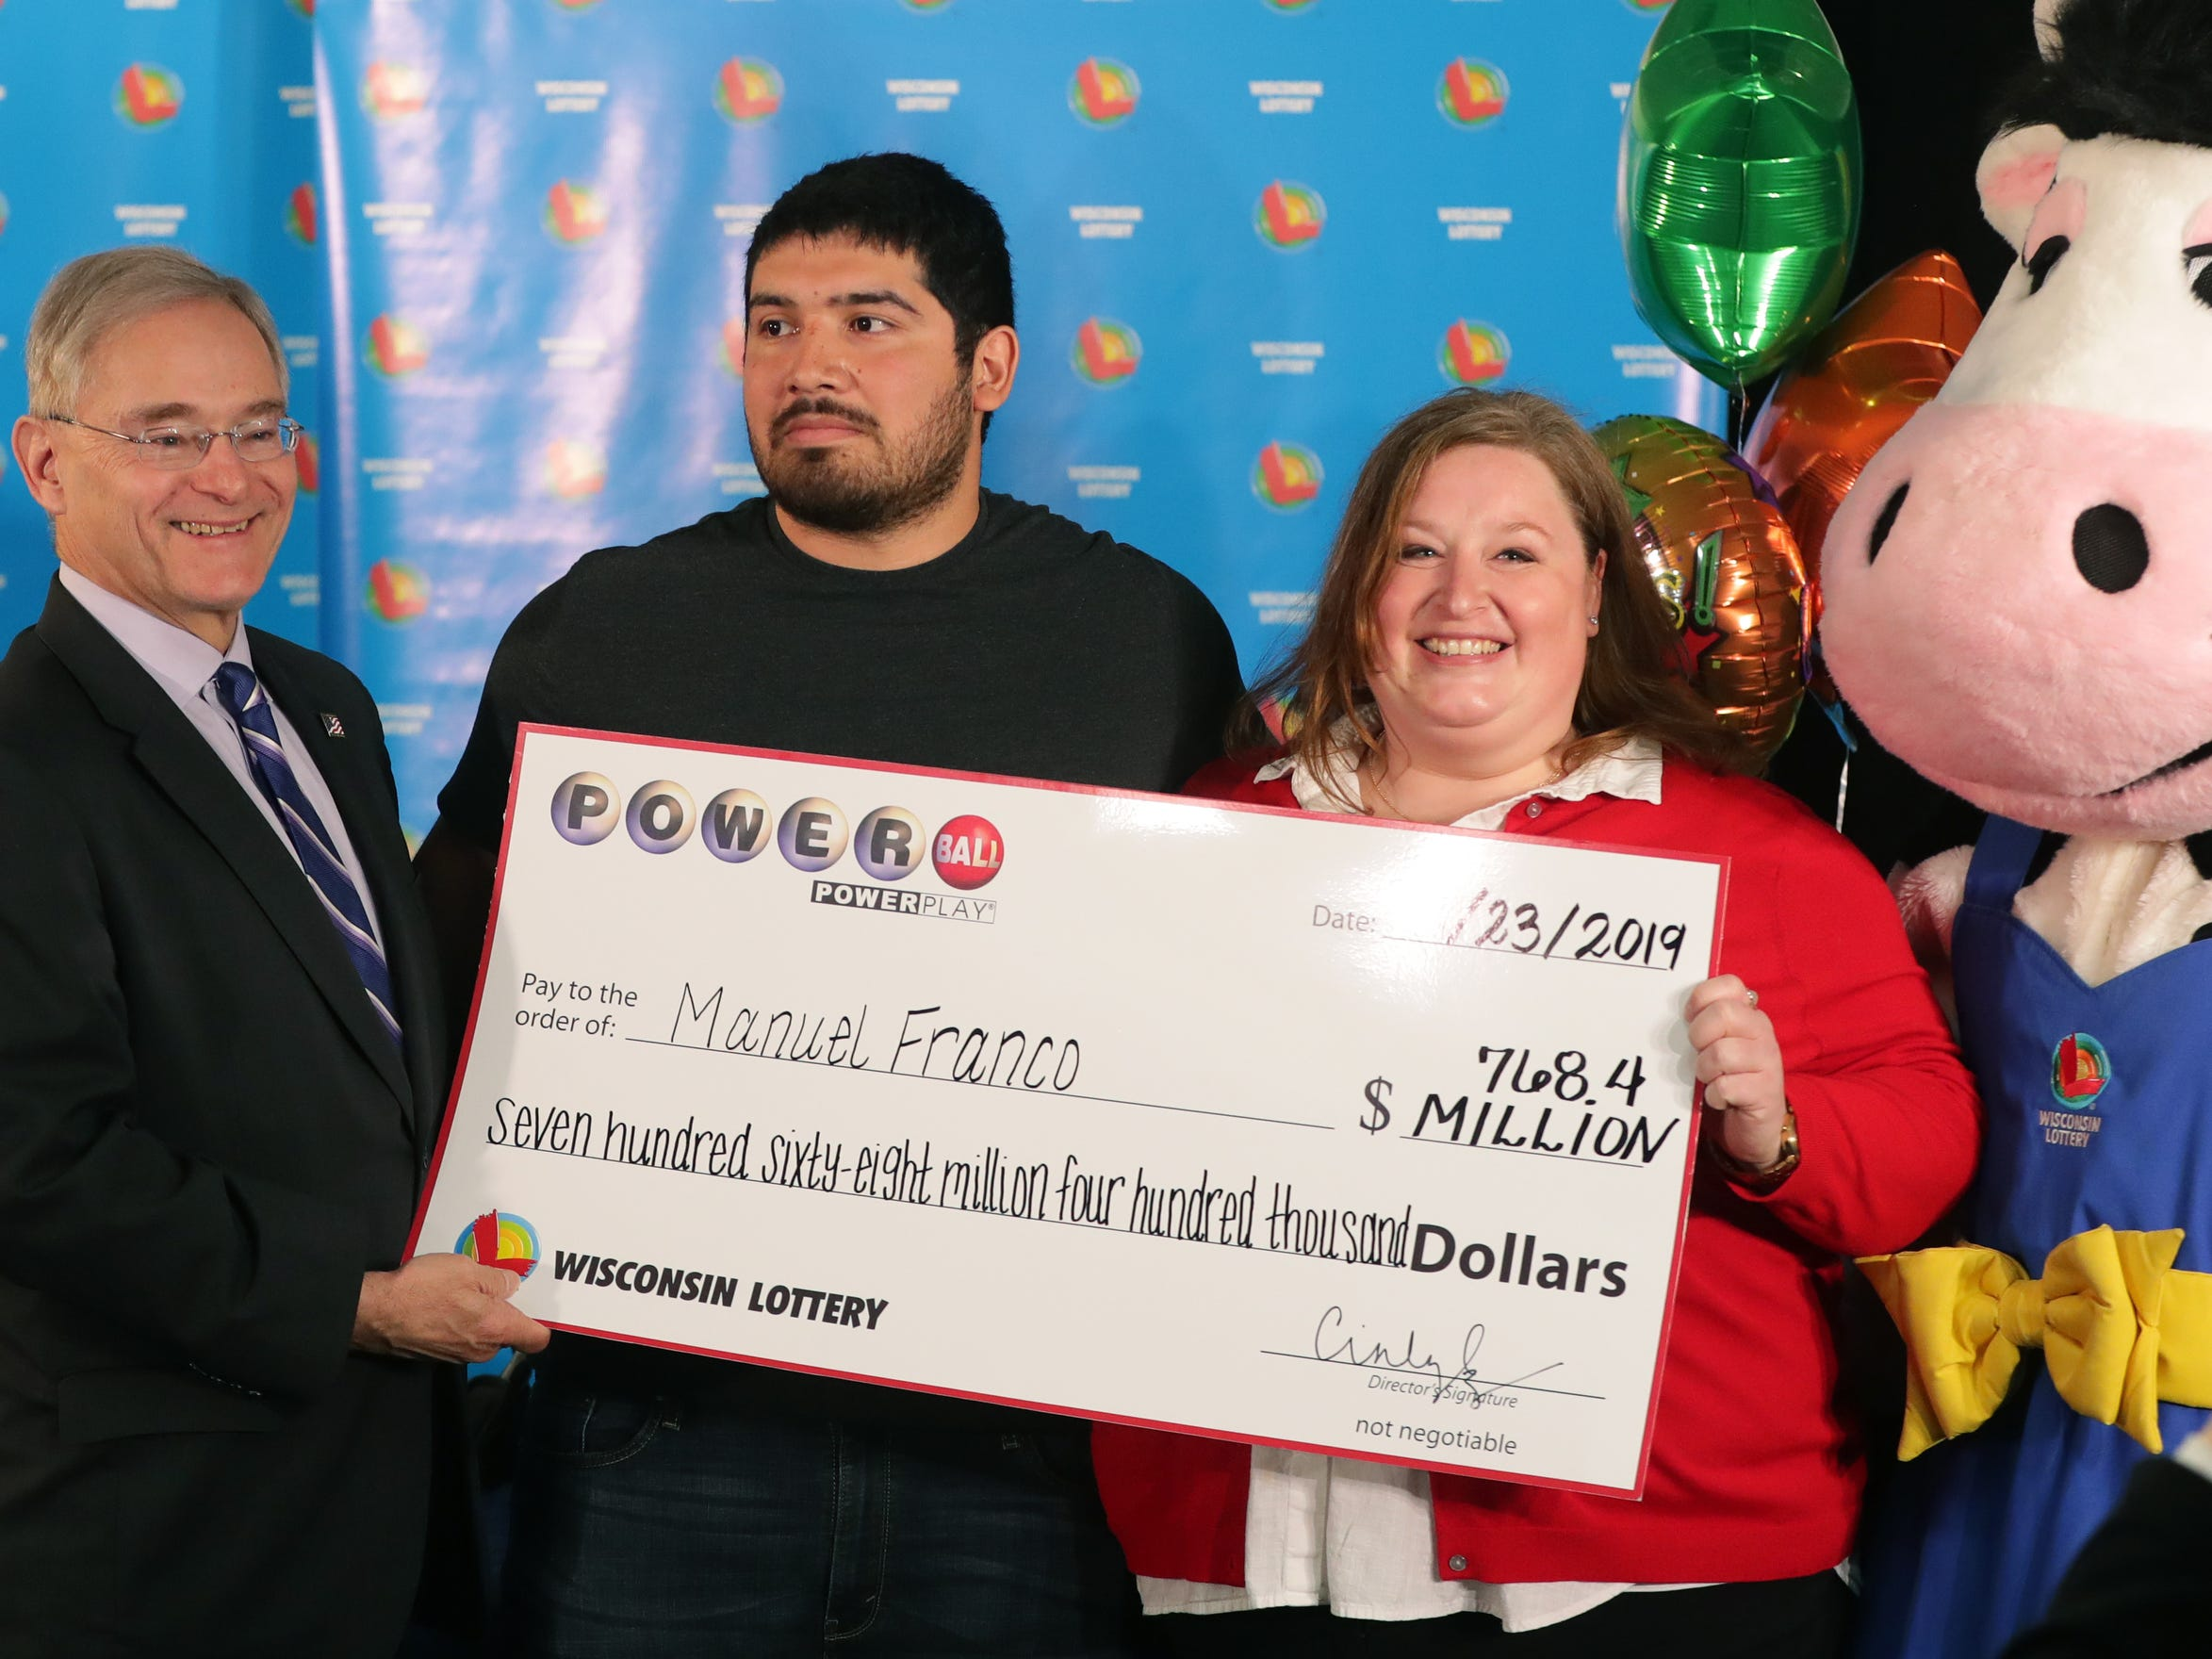 Manuel Franco, 24, second from left, of West Allis is the winner of the $768.4 million Powerball jackpot. Franco was identified early Tuesday afternoon at the state lottery headquarters. He took the lump sum payout of $477 million. With him are Wisconsin Department of Revenue Secretary Peter Barca, Wisconsin Lottery Director Cindy Polzin and Moola, the lottery mascot.